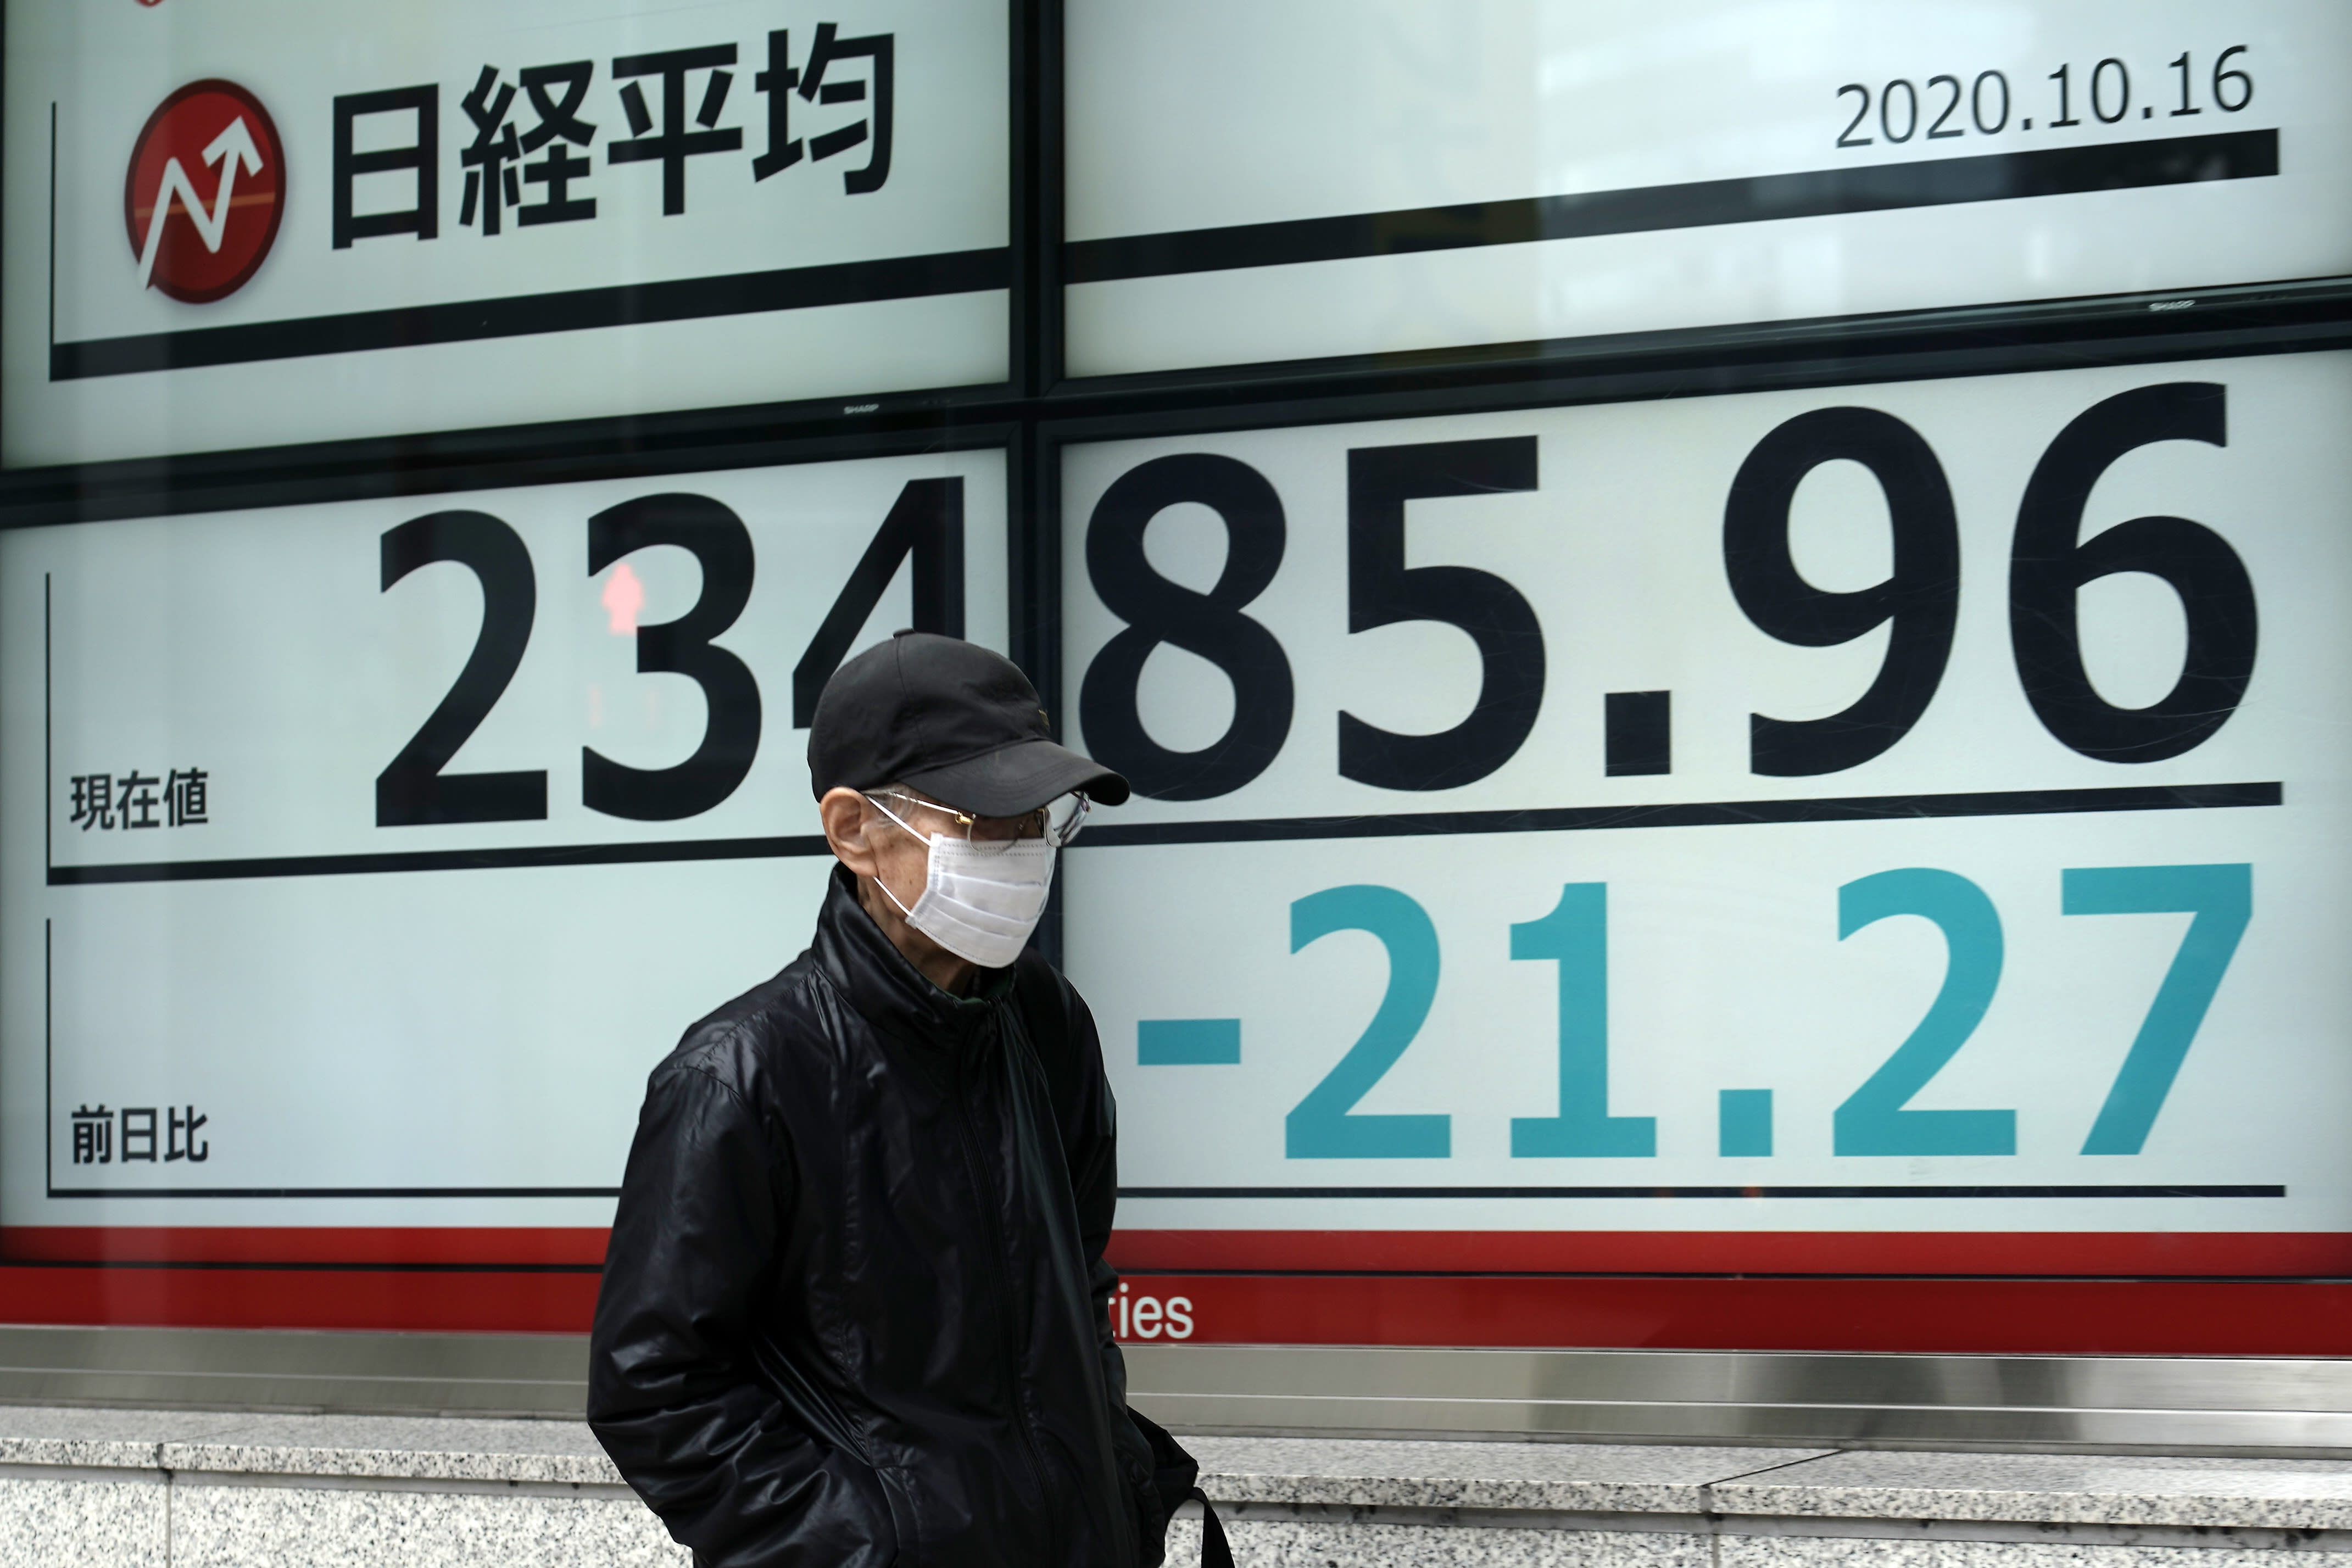 A man walks past an electronic stock board showing Japan's Nikkei 225 index at a securities firm in Tokyo Friday, Oct. 16, 2020. Asian shares were mixed on Friday as investors weighed concerns about the U.S. presidential election and an economic stimulus package, on top of fears of flaring outbreaks of coronavirus. (AP Photo/Eugene Hoshiko)